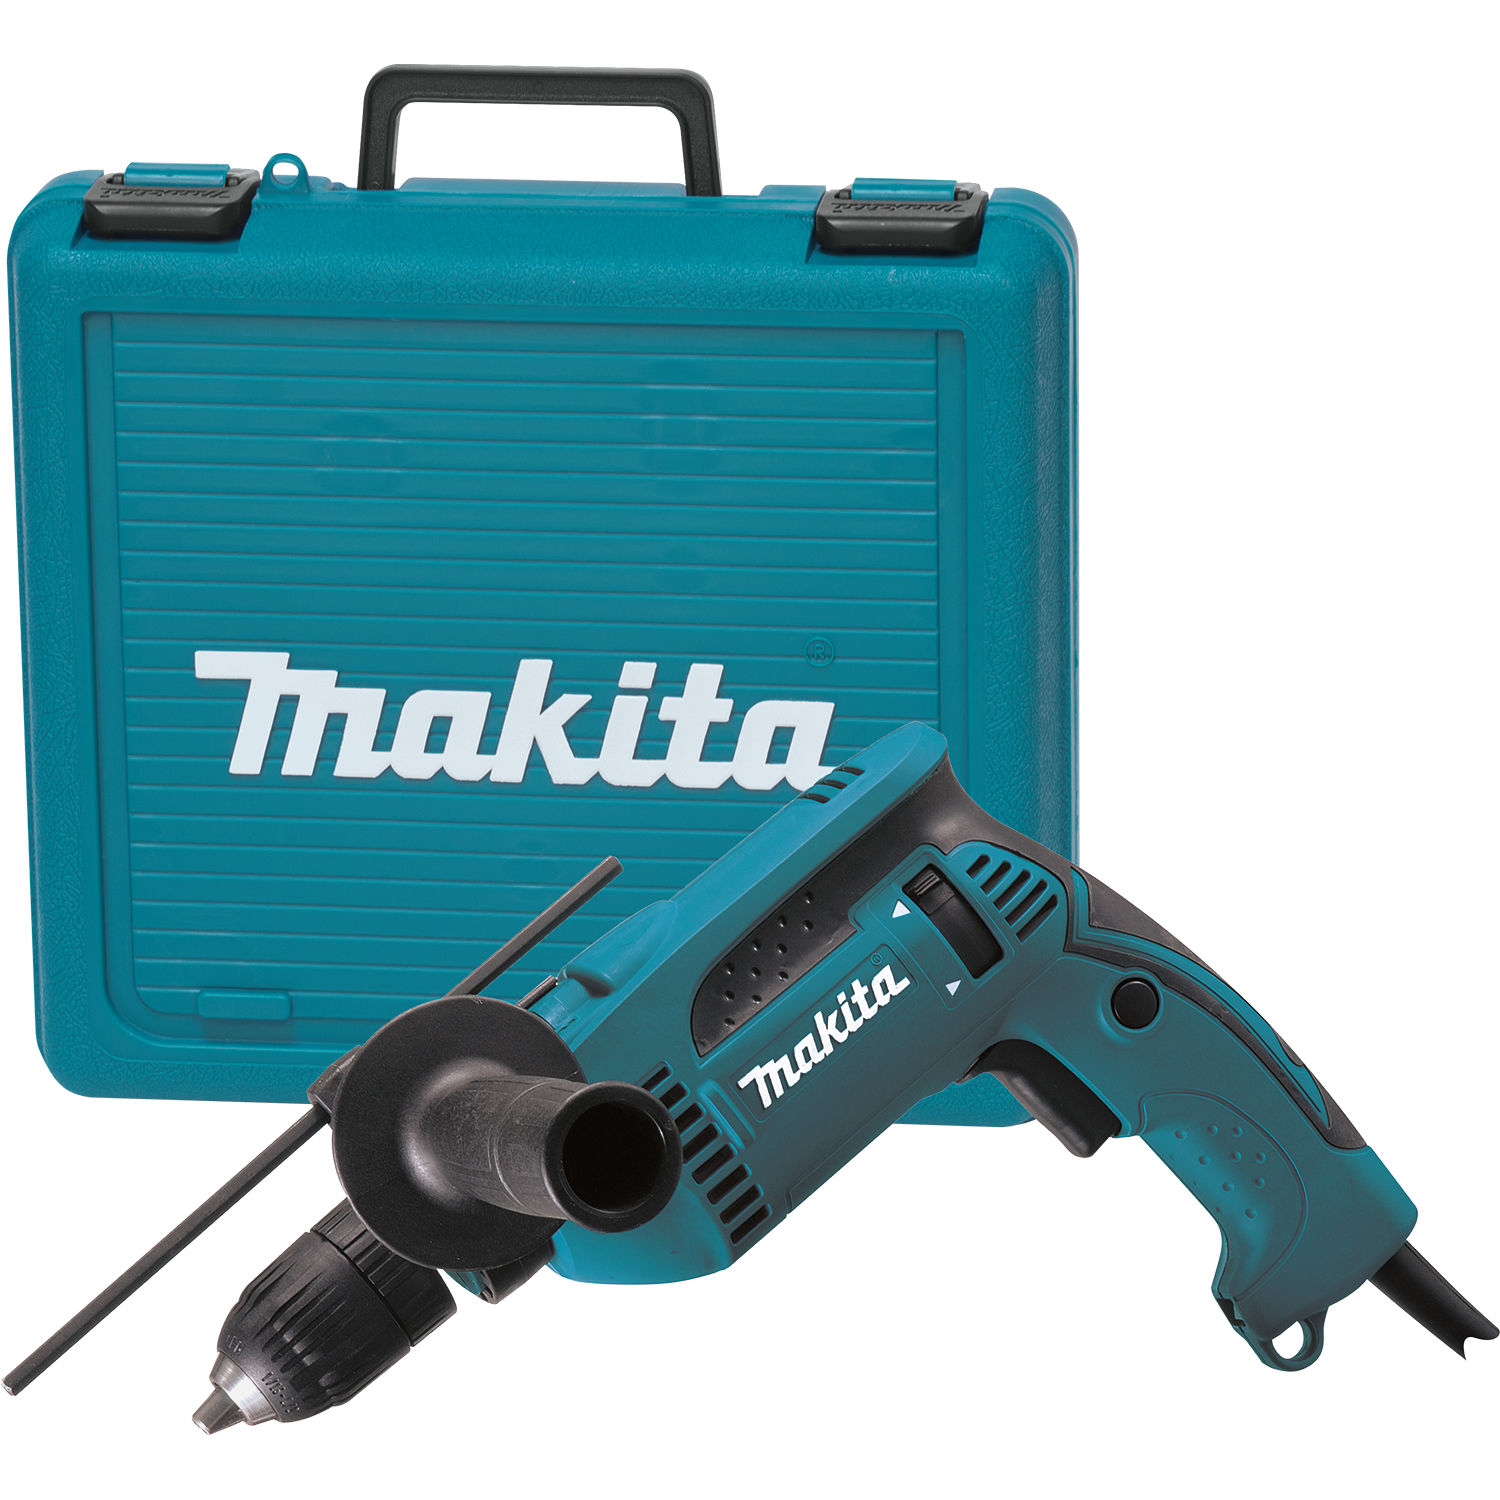 Makita USA - Product Details -HP1641K on ingersoll rand drill diagram, power drill diagram, bosch drill diagram, hammer drill diagram, drill bit diagram, black and decker drill diagram, drill press diagram, milwaukee drill diagram, hilti drill diagram, pillar drill diagram, drill chuck diagram,